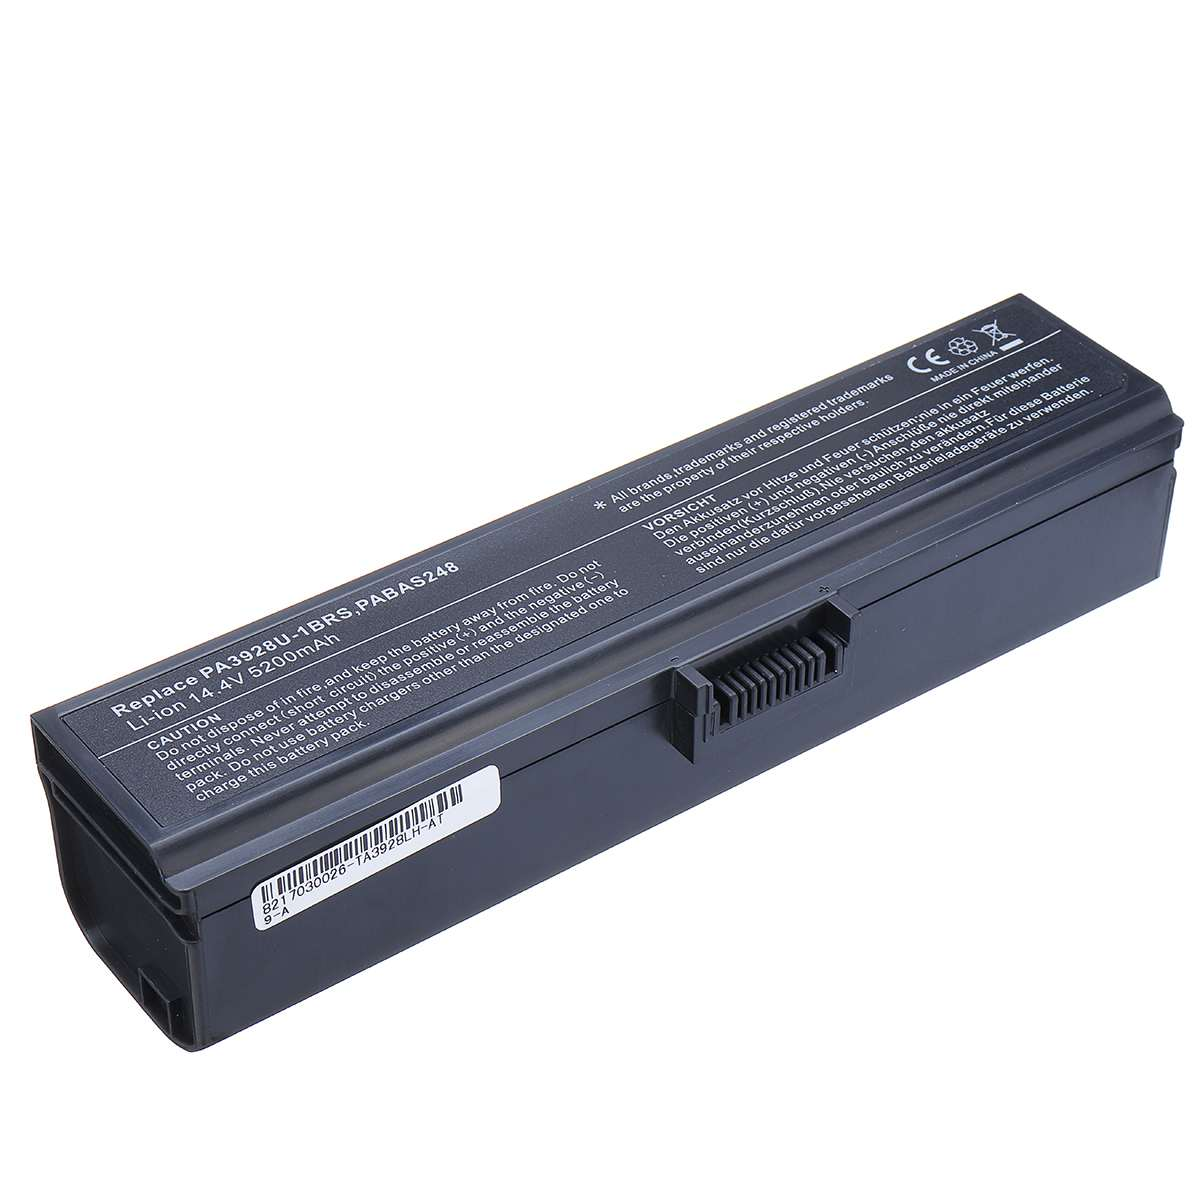 8 Cell 4400mAh 14.4V Battery Laptop Battery For Qosmio X770-107 X770-BT5G24 X775 PA3928U-1BRS PABAS248